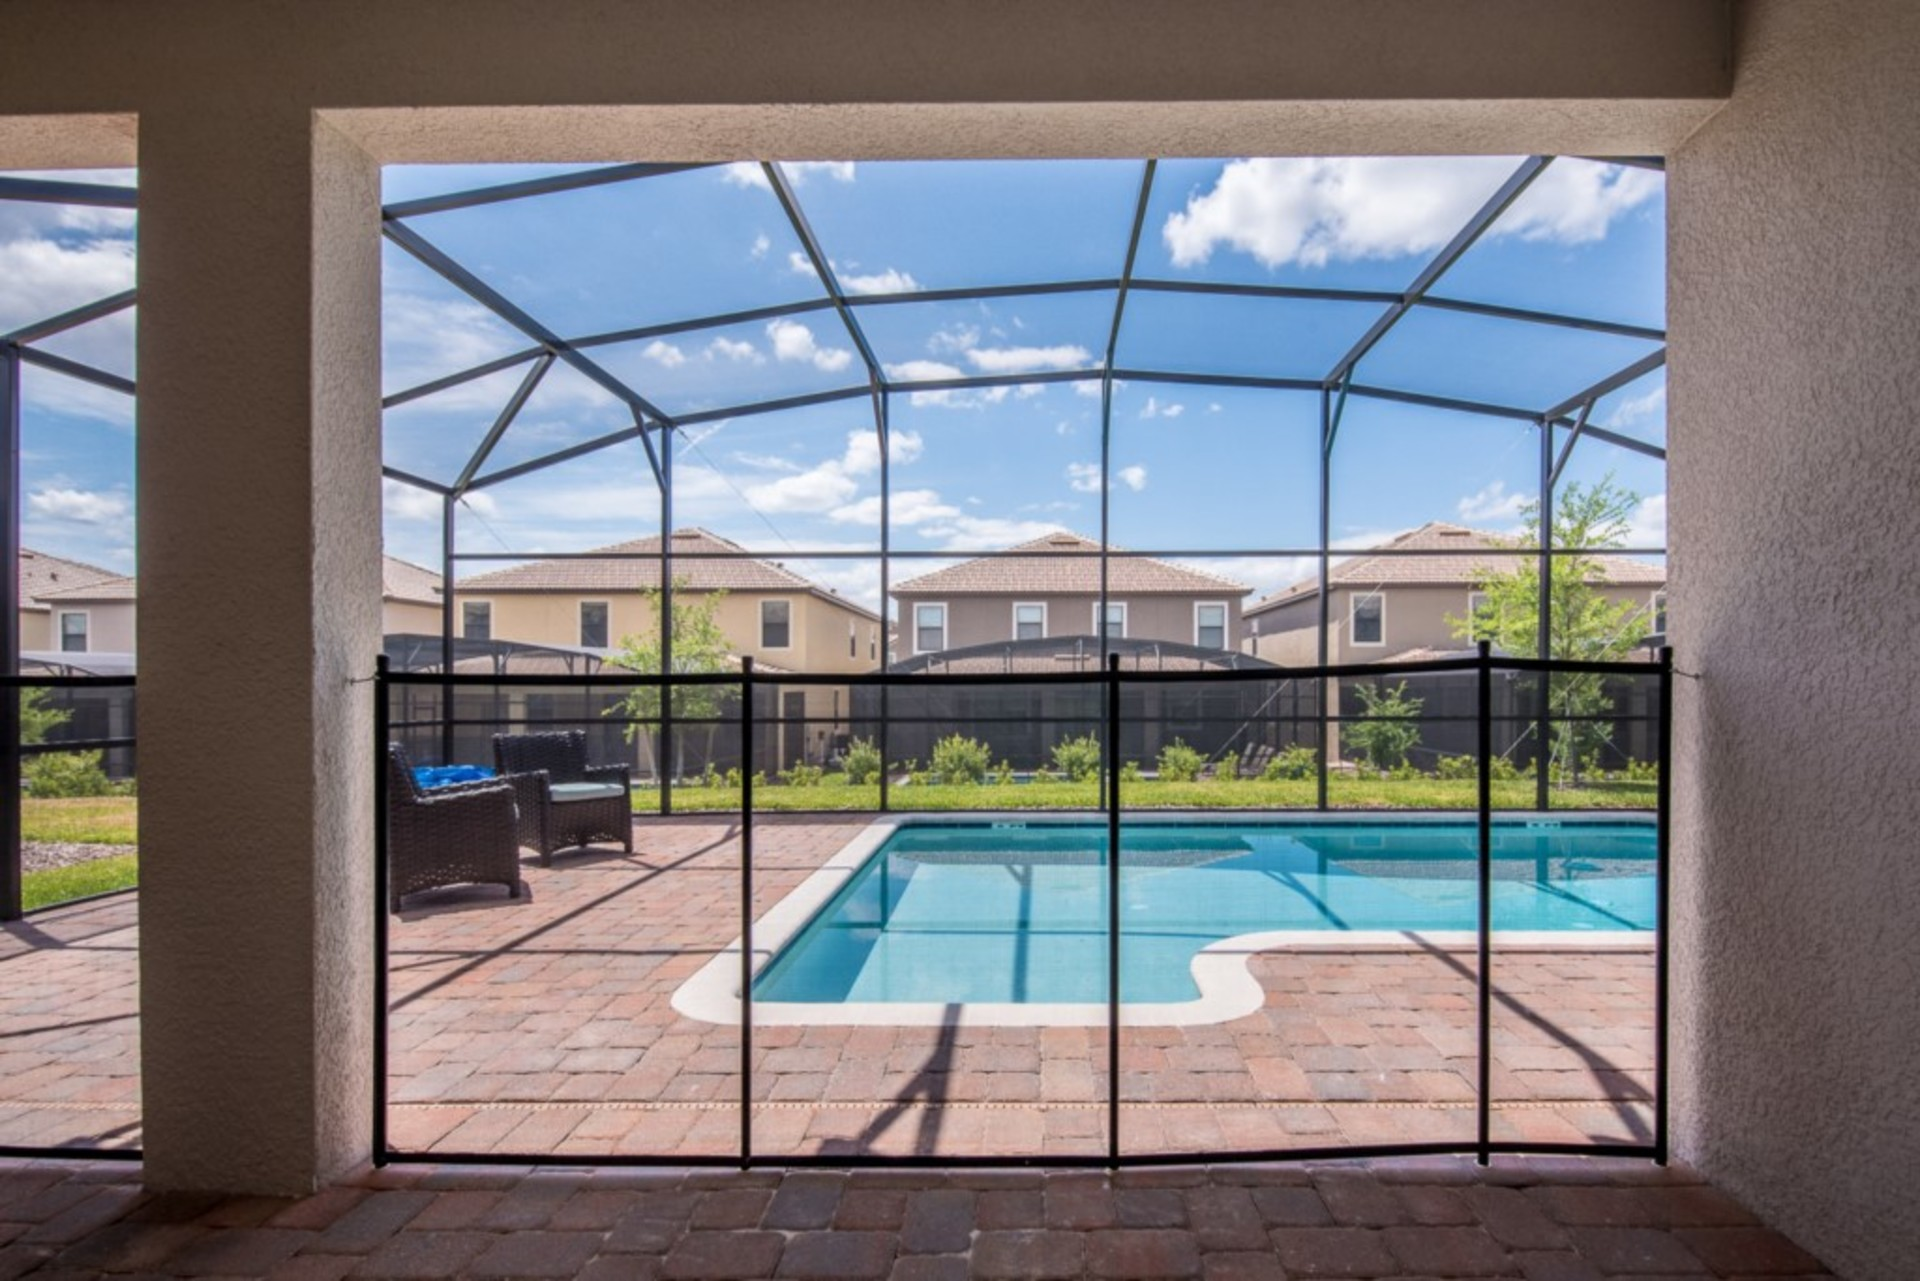 Rent Your Own 5 Star Villa in Orlando, Champions Gate Resort, Villa Orlando 1516 photo 5879930